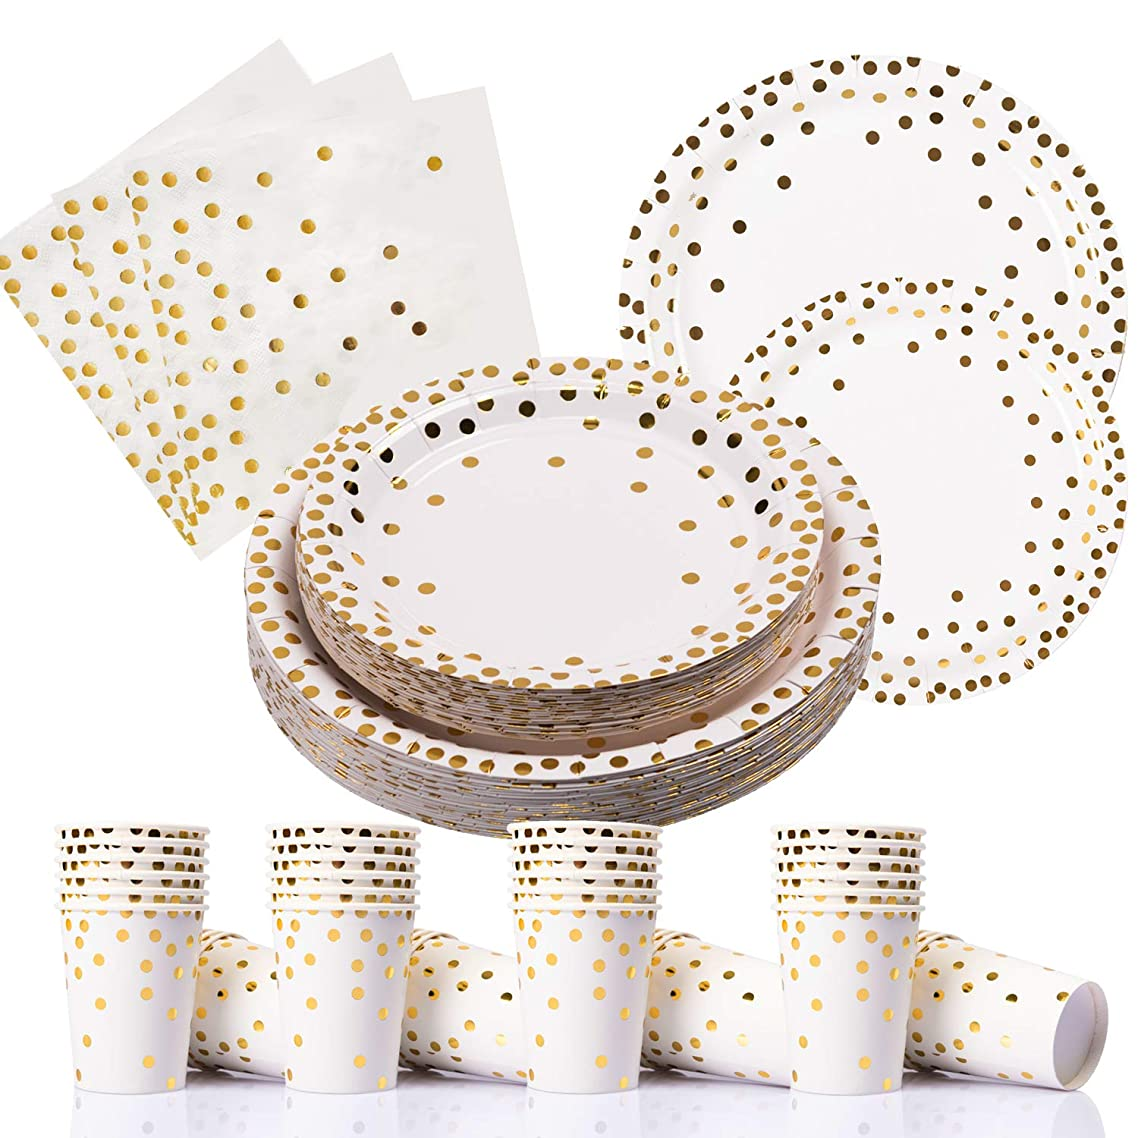 200PCS Gold Dot Disposable Paper Plates,Cups and Napkins, Tableware Sets Include 50 Dinner Plates, 50 Dessert Plates, 50 9 oz Paper Cups, 50 Luncheon Napkins, for Baby Shower Birthday Wedding Party